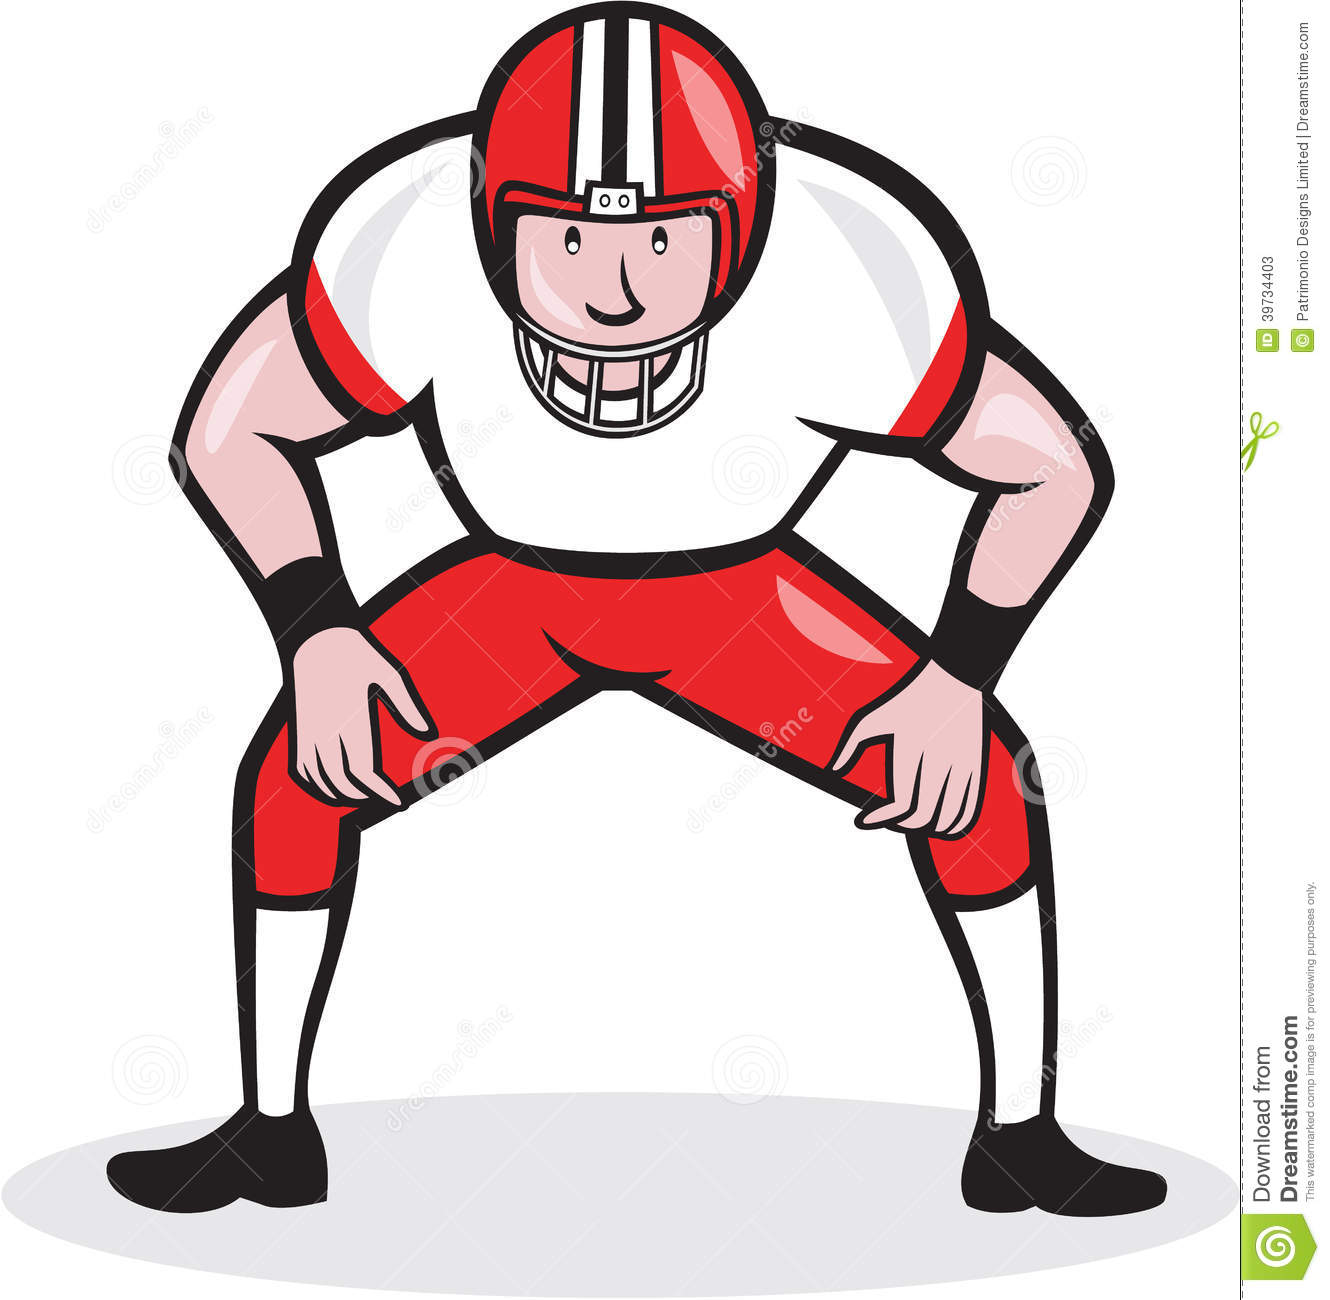 1330x1300 Cartoon Football Player Clipart Clipartlook